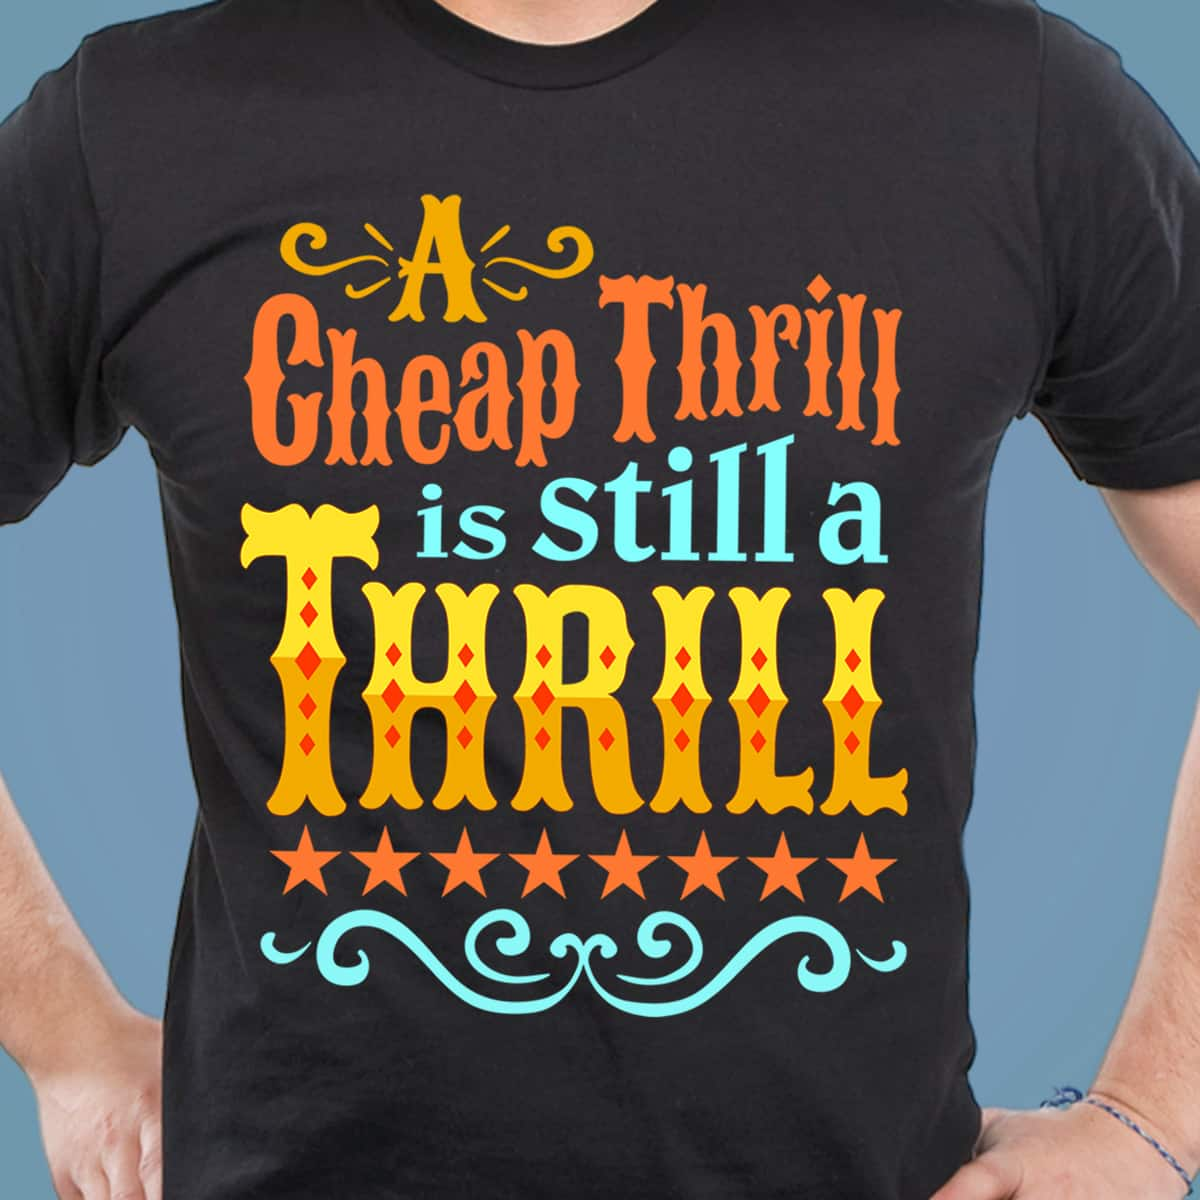 CHEAP THRILL by Angelrobot on Threadless